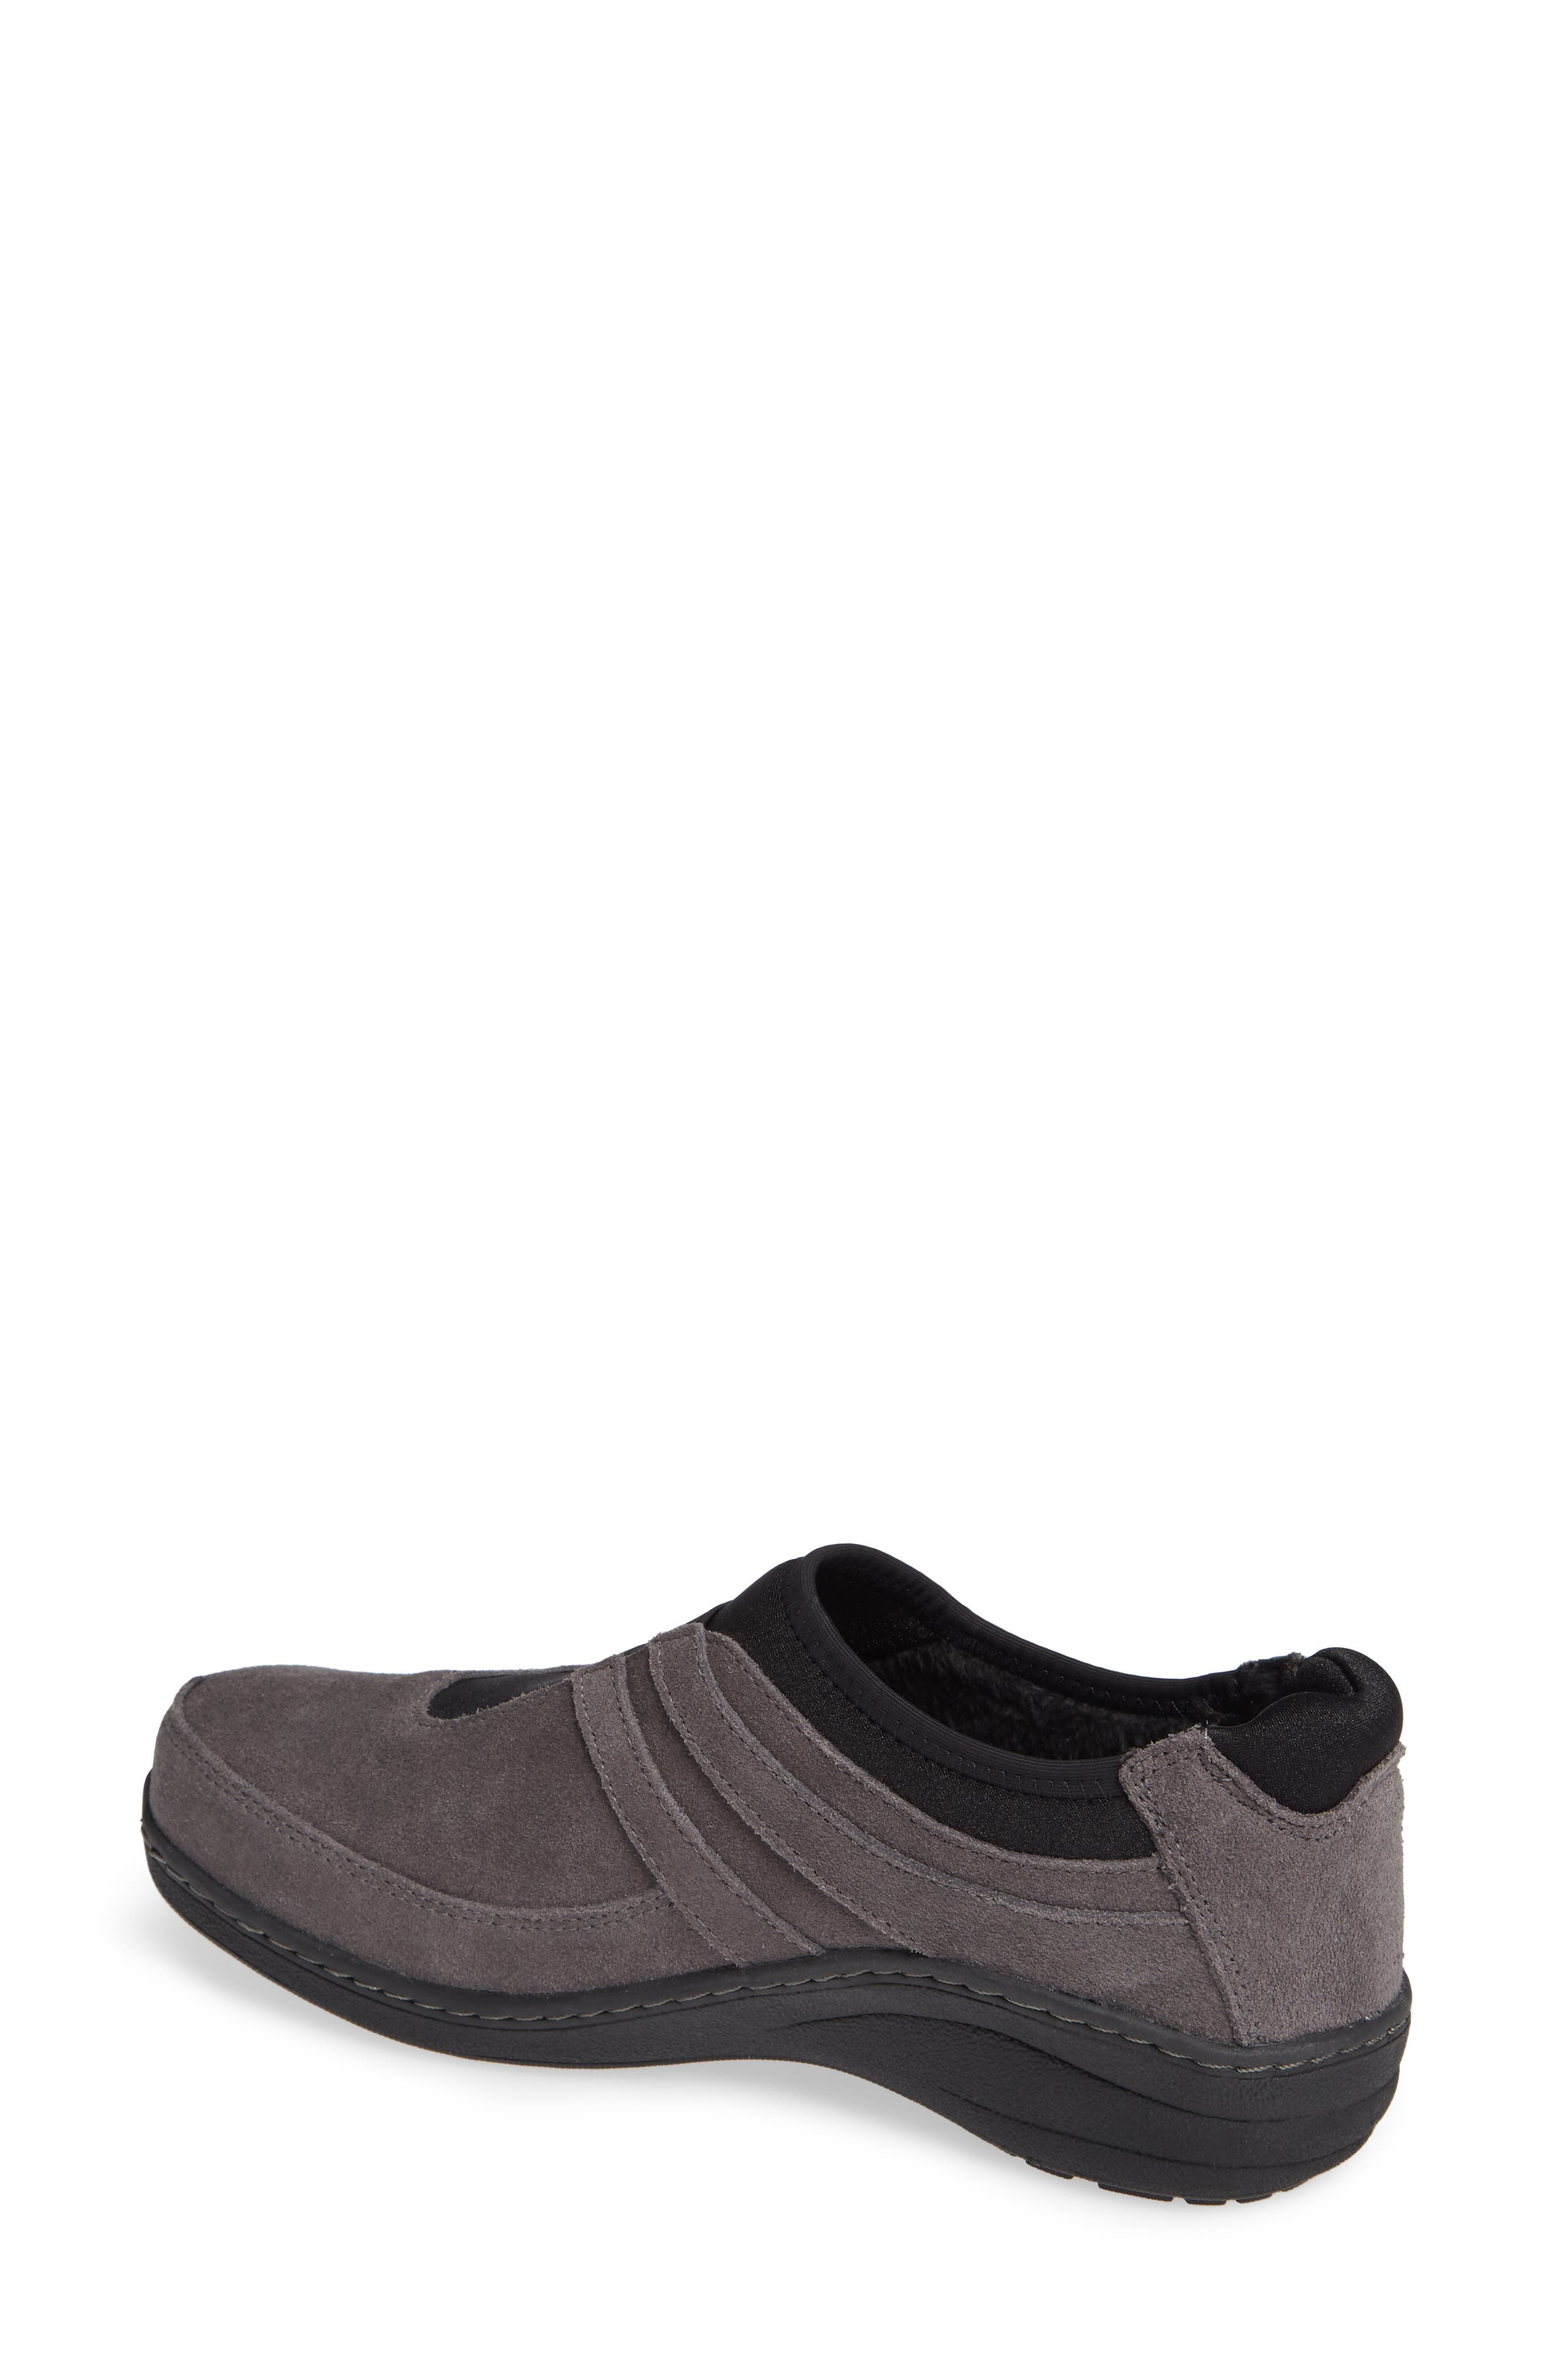 Berries Slip-On Sneaker,                             Alternate thumbnail 2, color,                             CHARCOAL FABRIC